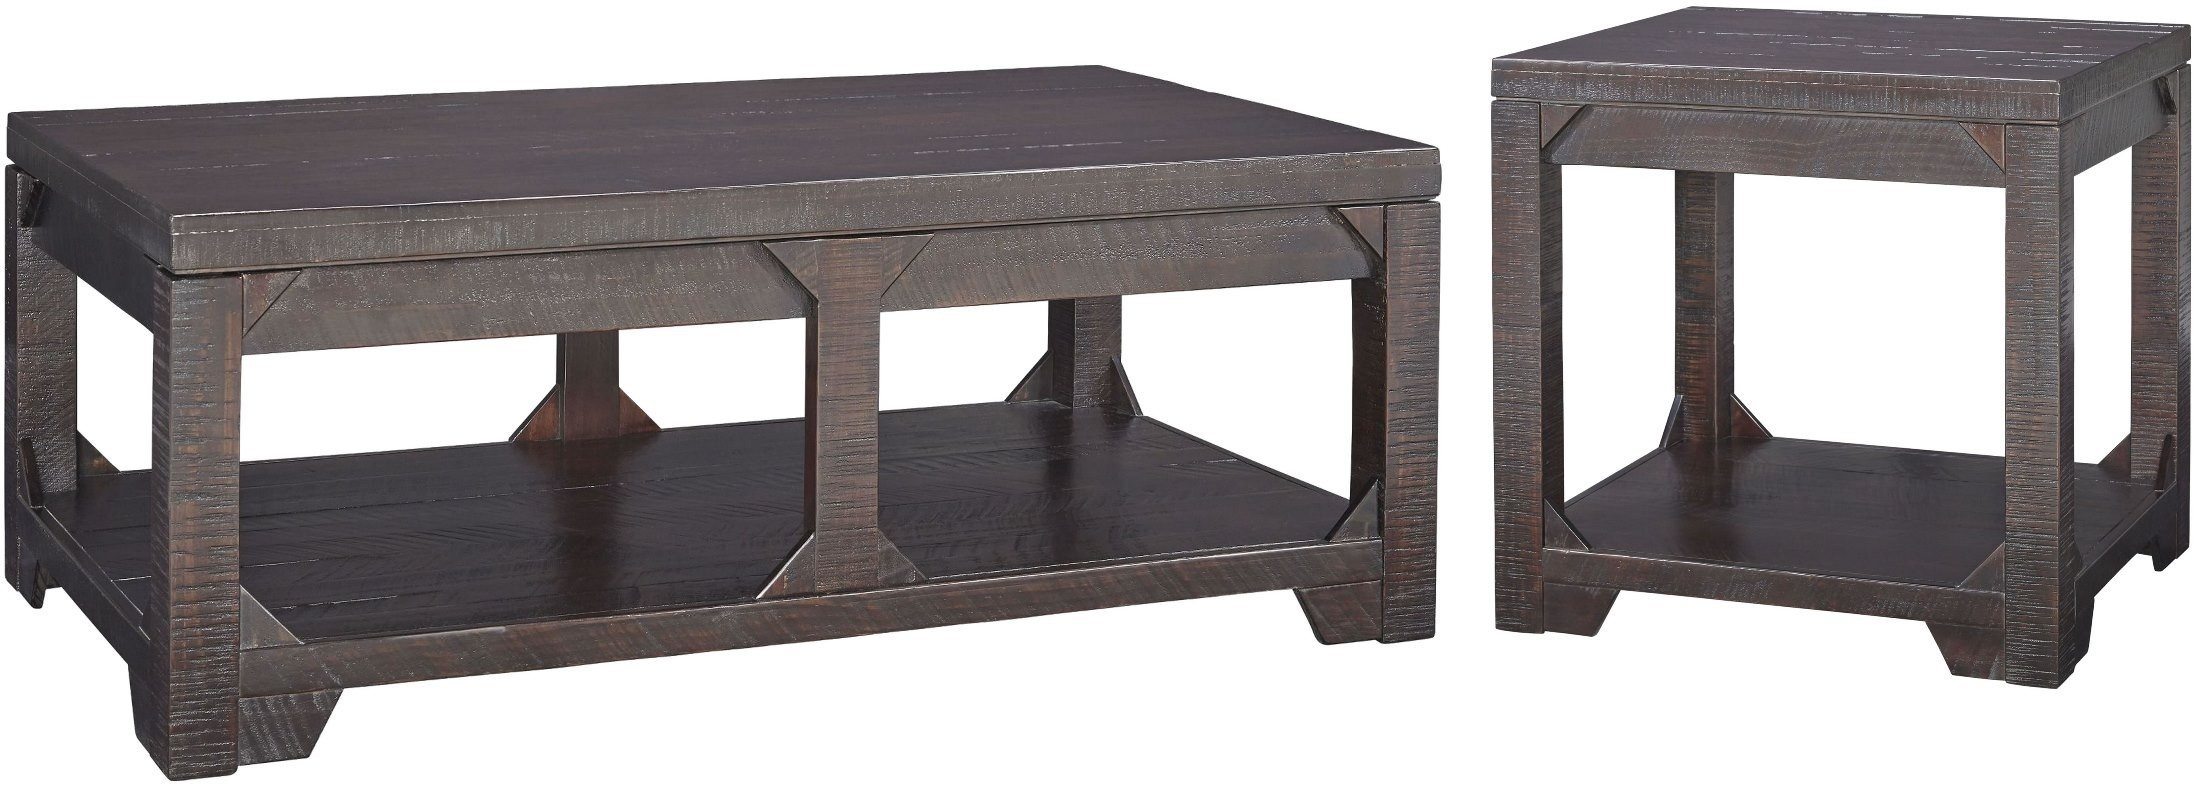 Ashley rogness 3pc rustic brown rectangular coffee table for Rustic coffee table and end table set